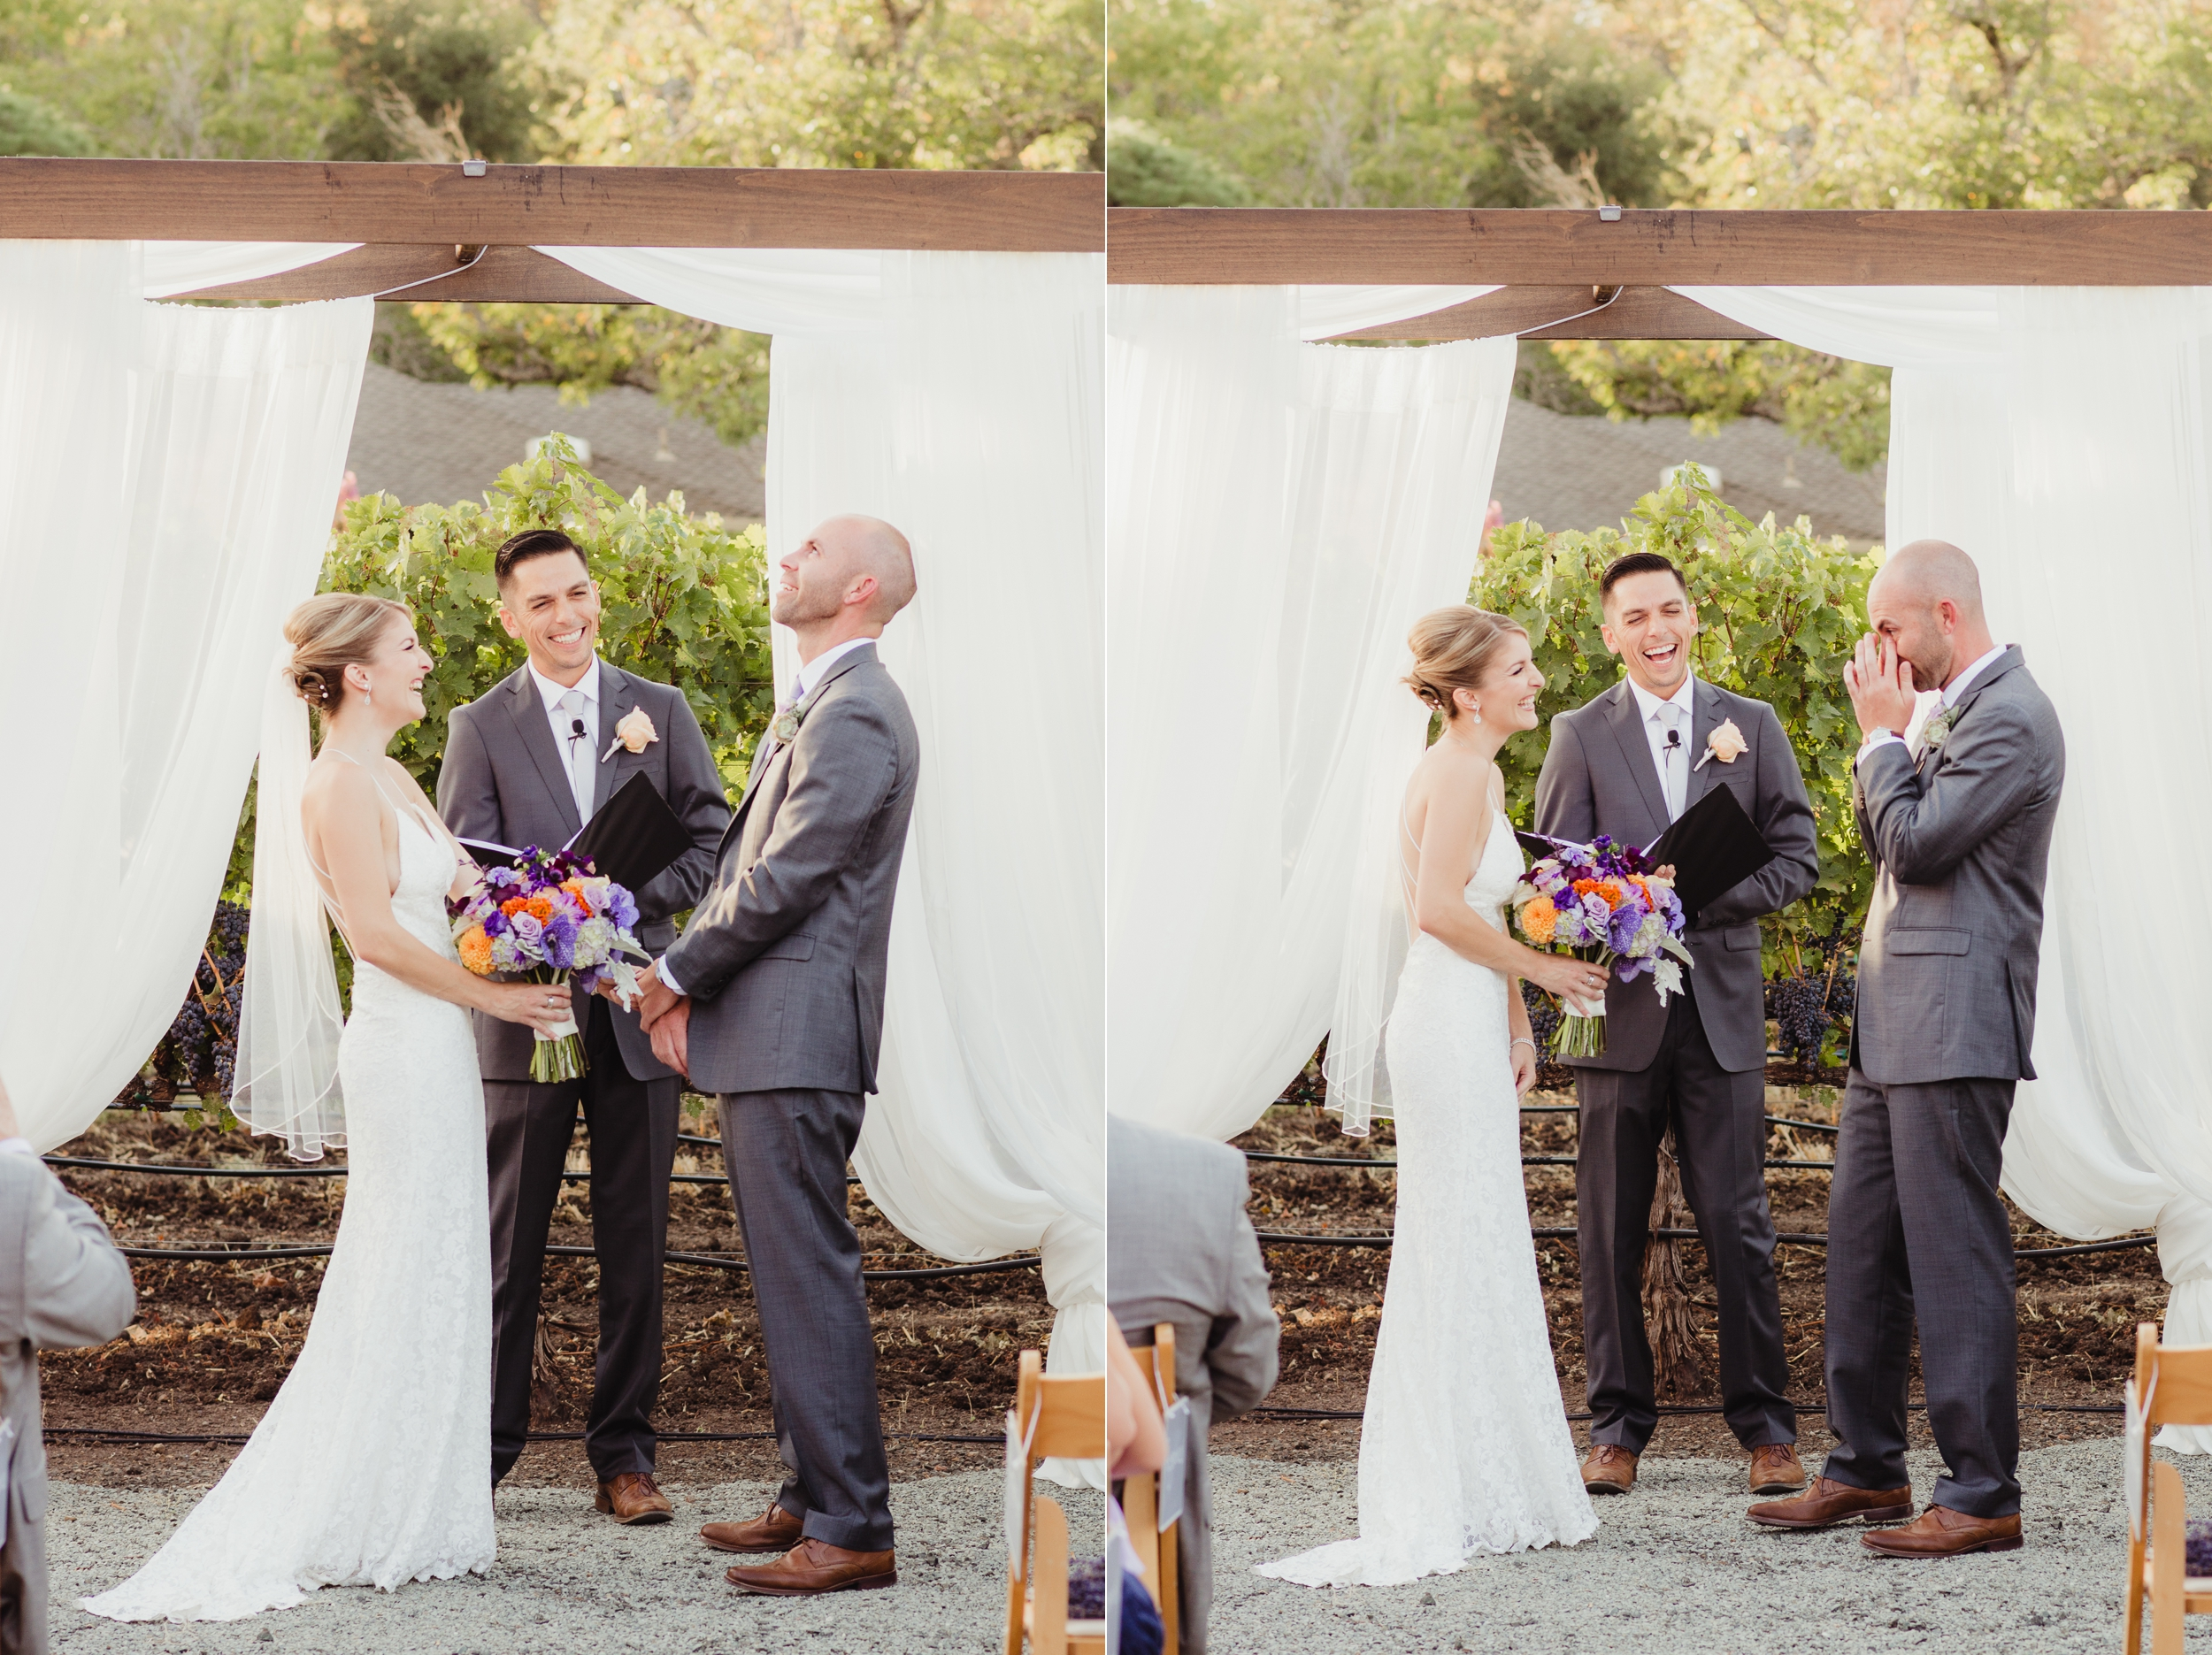 40-wine-country-calistoga-wedding-vivianchen-276_WEB.jpg